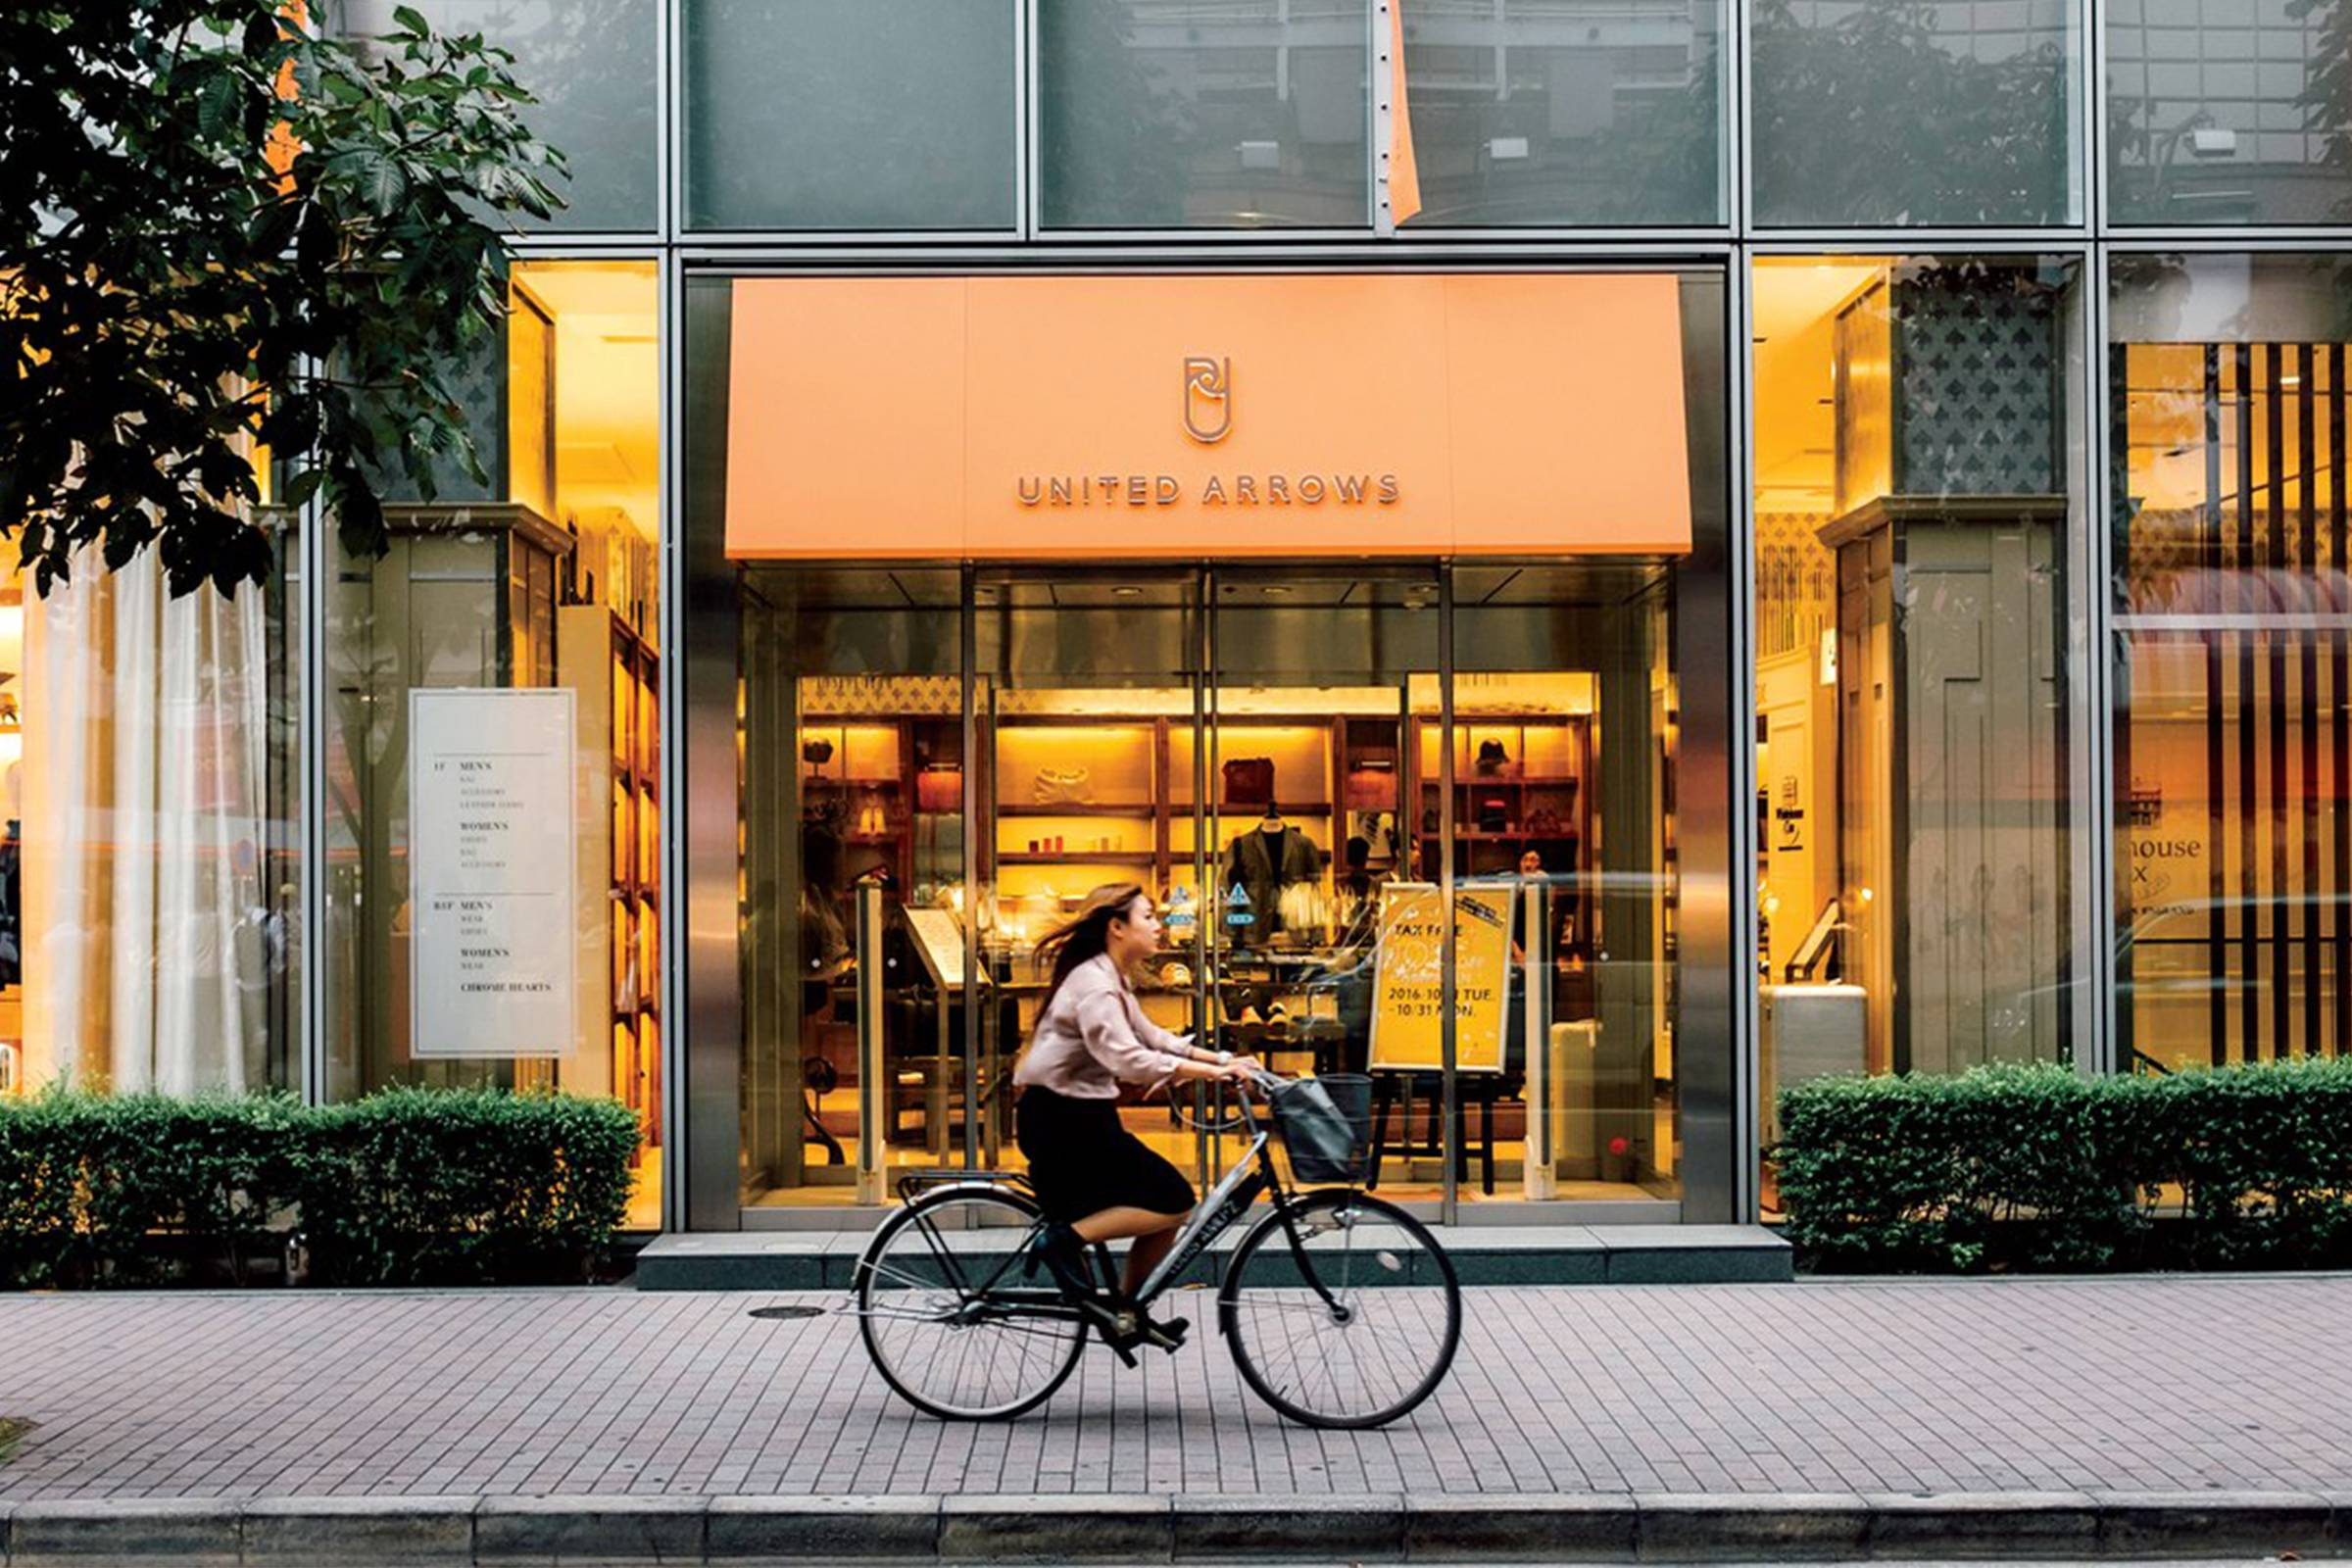 Influential japanese lifestyle and apparel brand beams has - These Larger Select Stores Are Essentially Japanese Mall Brands Believe It Or Not Unlike Stores Like The Gap However The Larger Japanese Select Stores